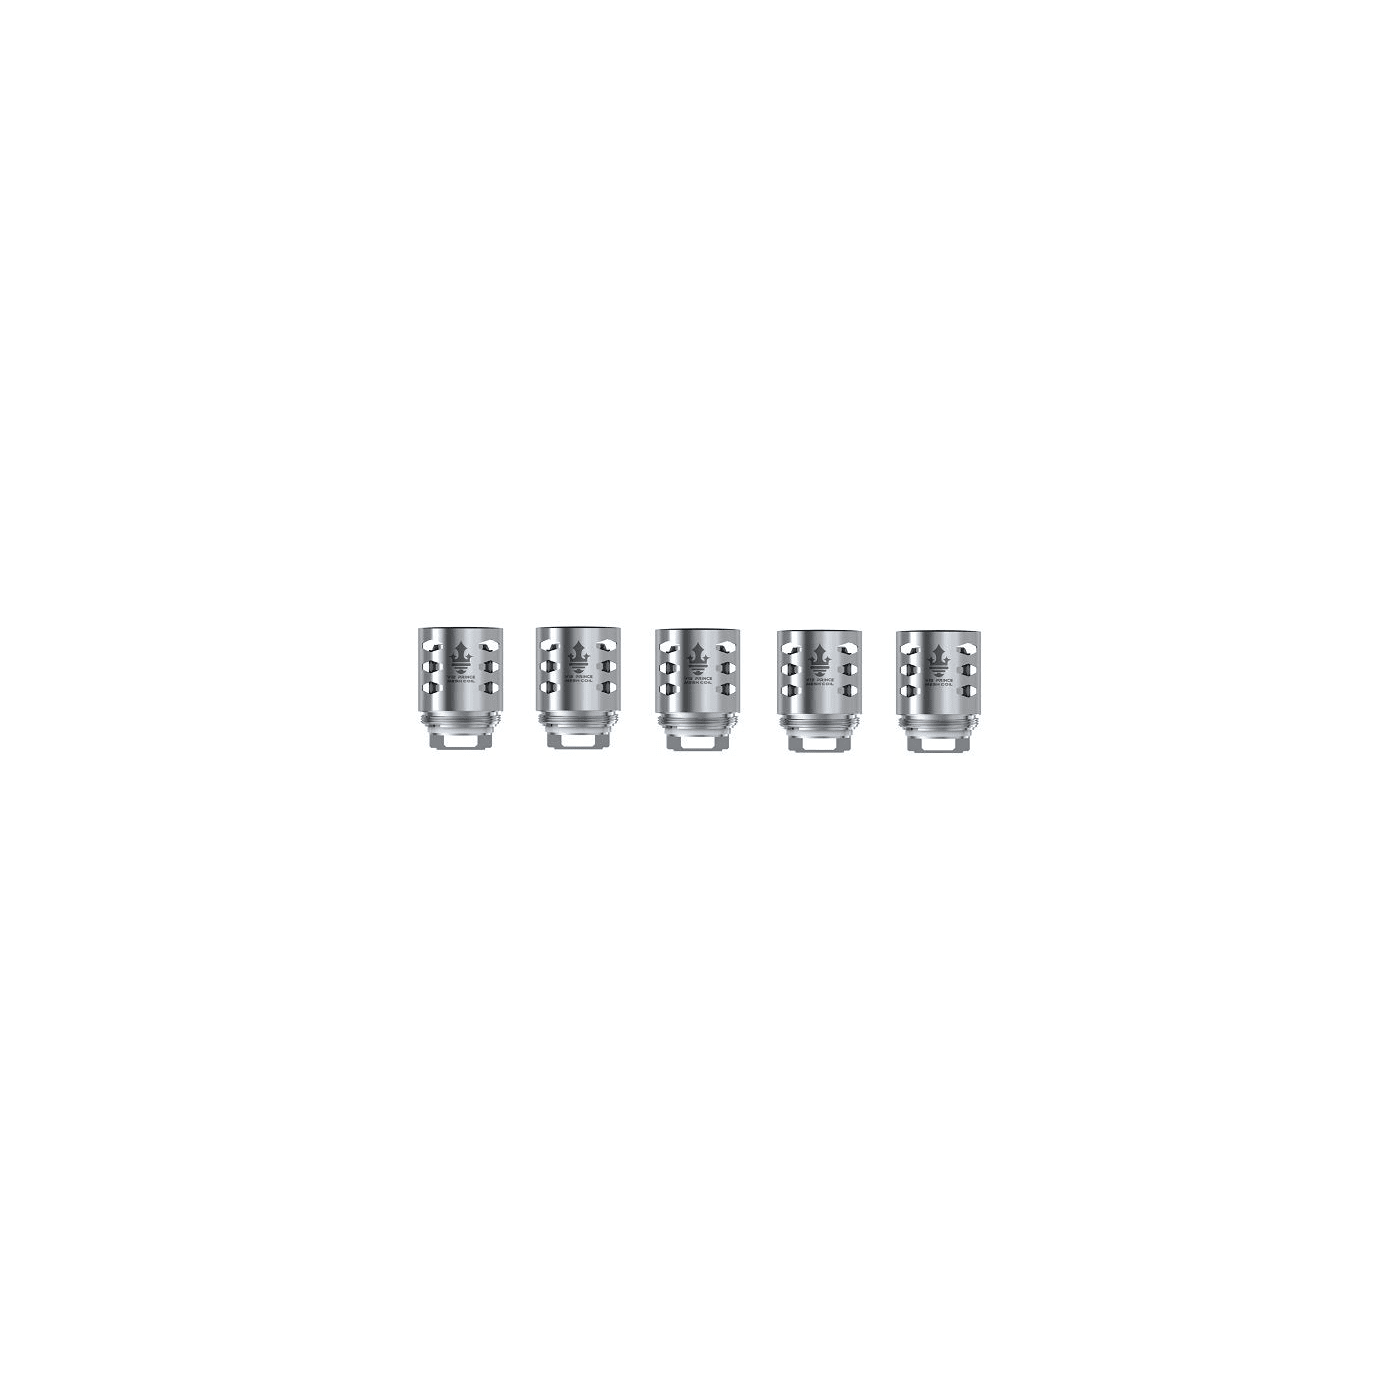 Smok TFV12 Prince Mesh Replacement Coil - 3 Pack